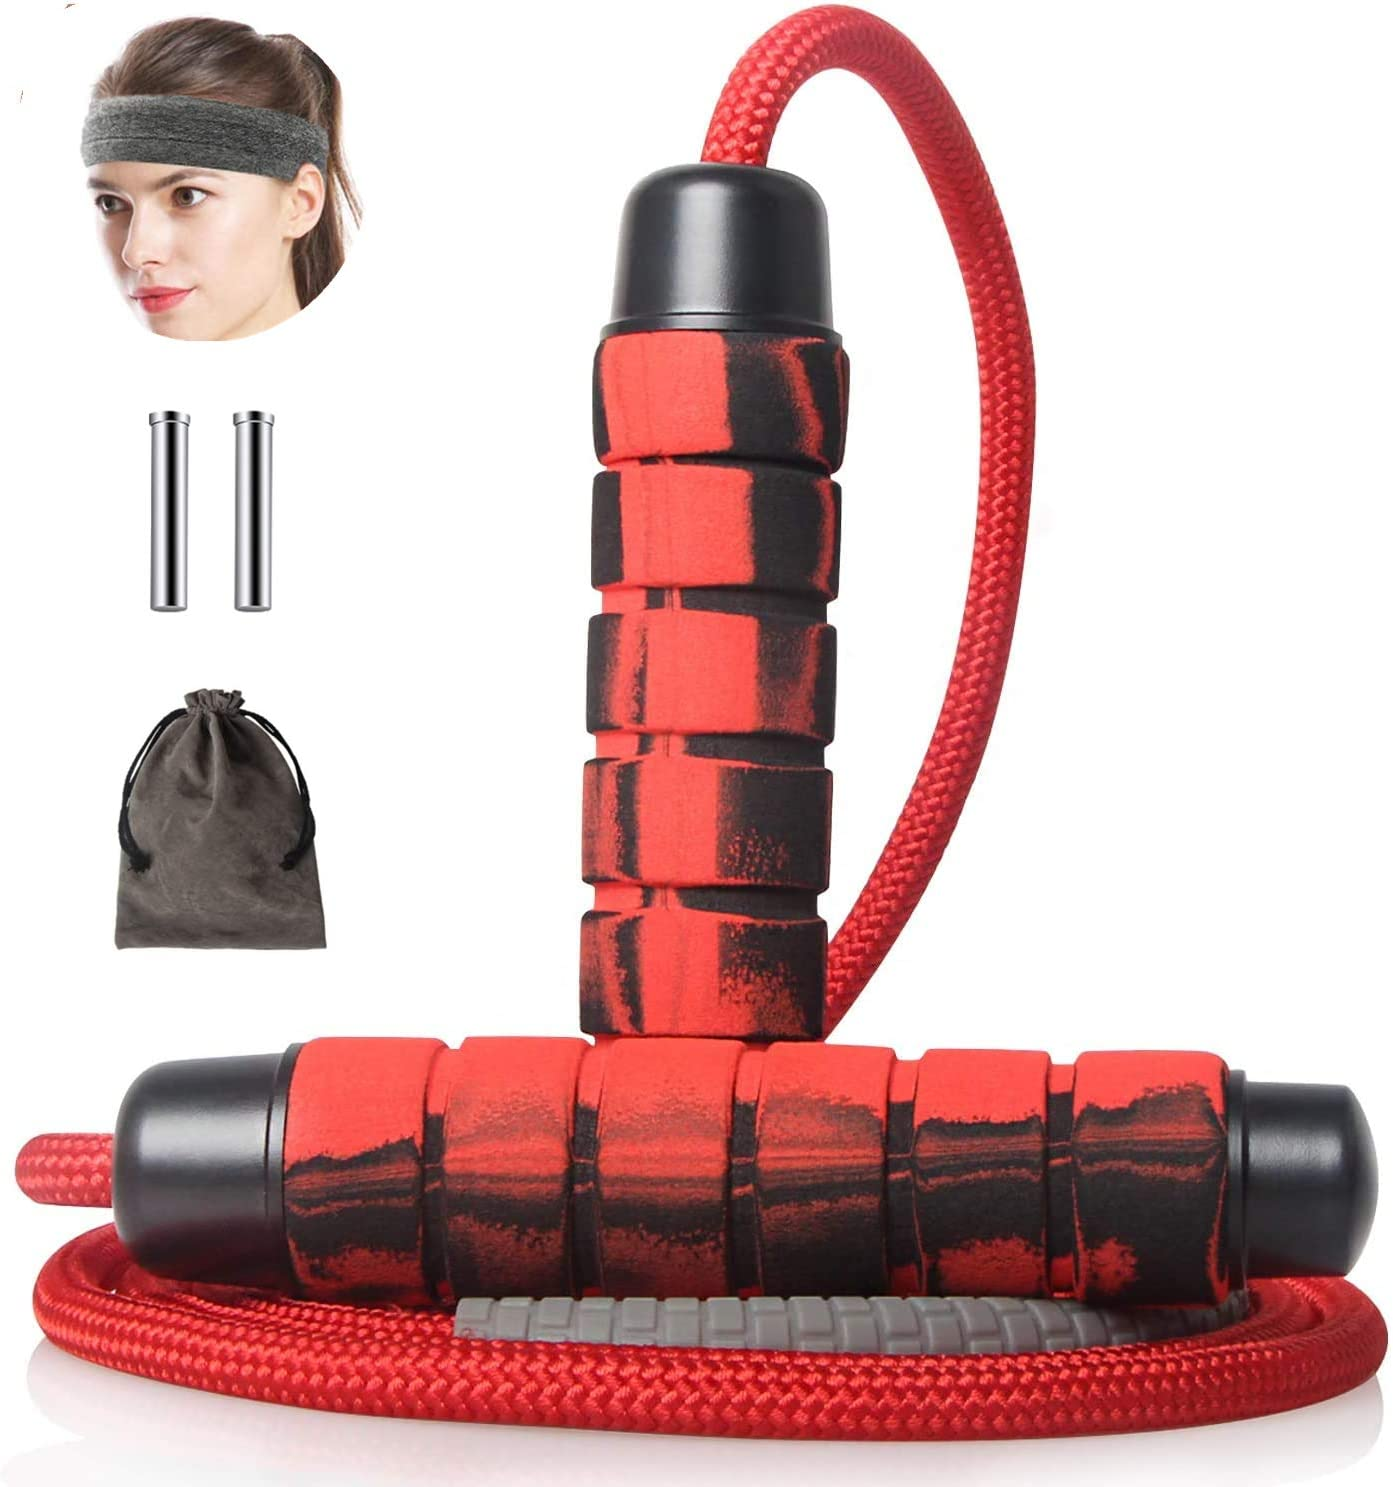 Heavy Jump Rope with Weight Bars Adjustable Fitness Jump Rope Workout Skipping Rope for Men Women Exercise DETUCK Weighted Jump Rope Boxing etc